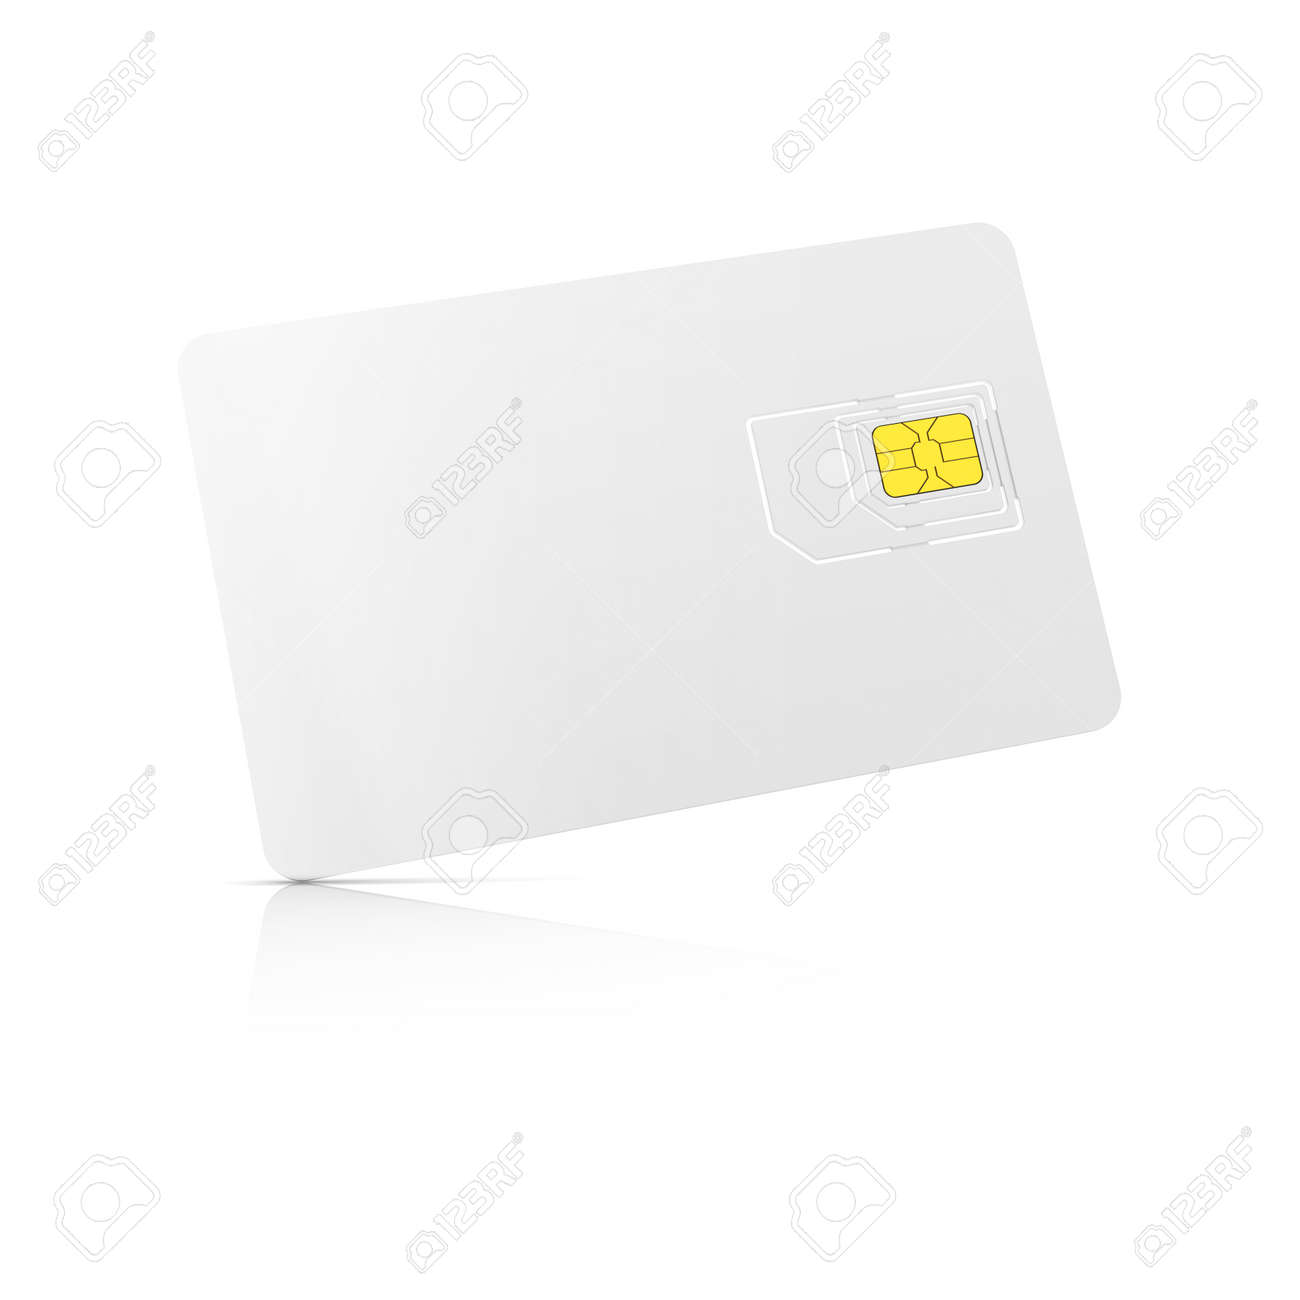 1 1 Sim Karte.Stock Photo